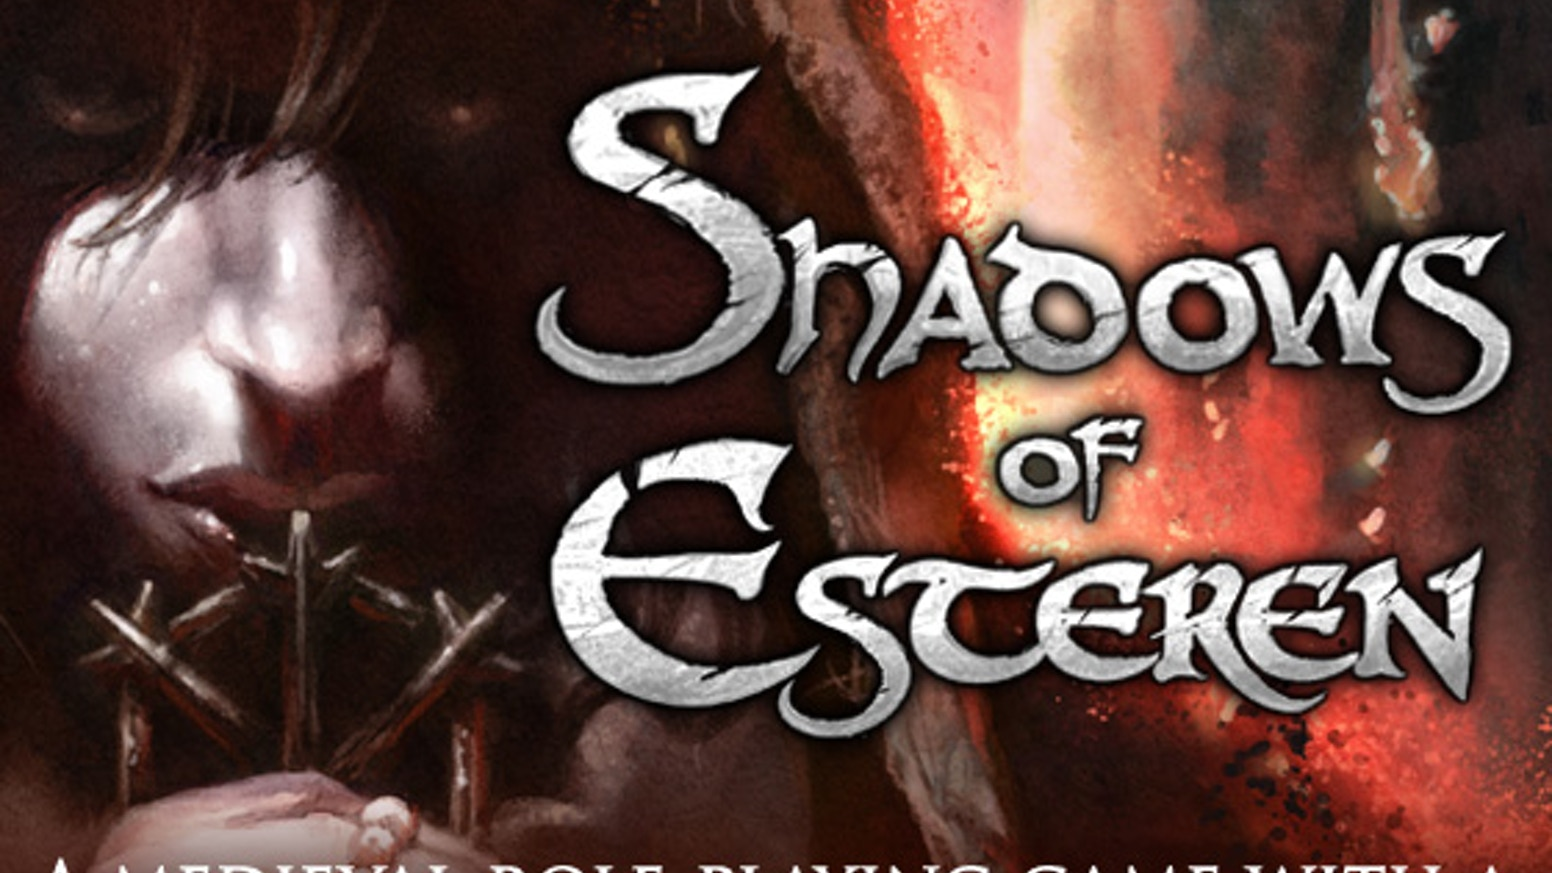 A medieval role-playing game somewhere between Ravenloft, Game of Thrones and Call of Cthulhu. Winner of three ENnie Awards in 2013!